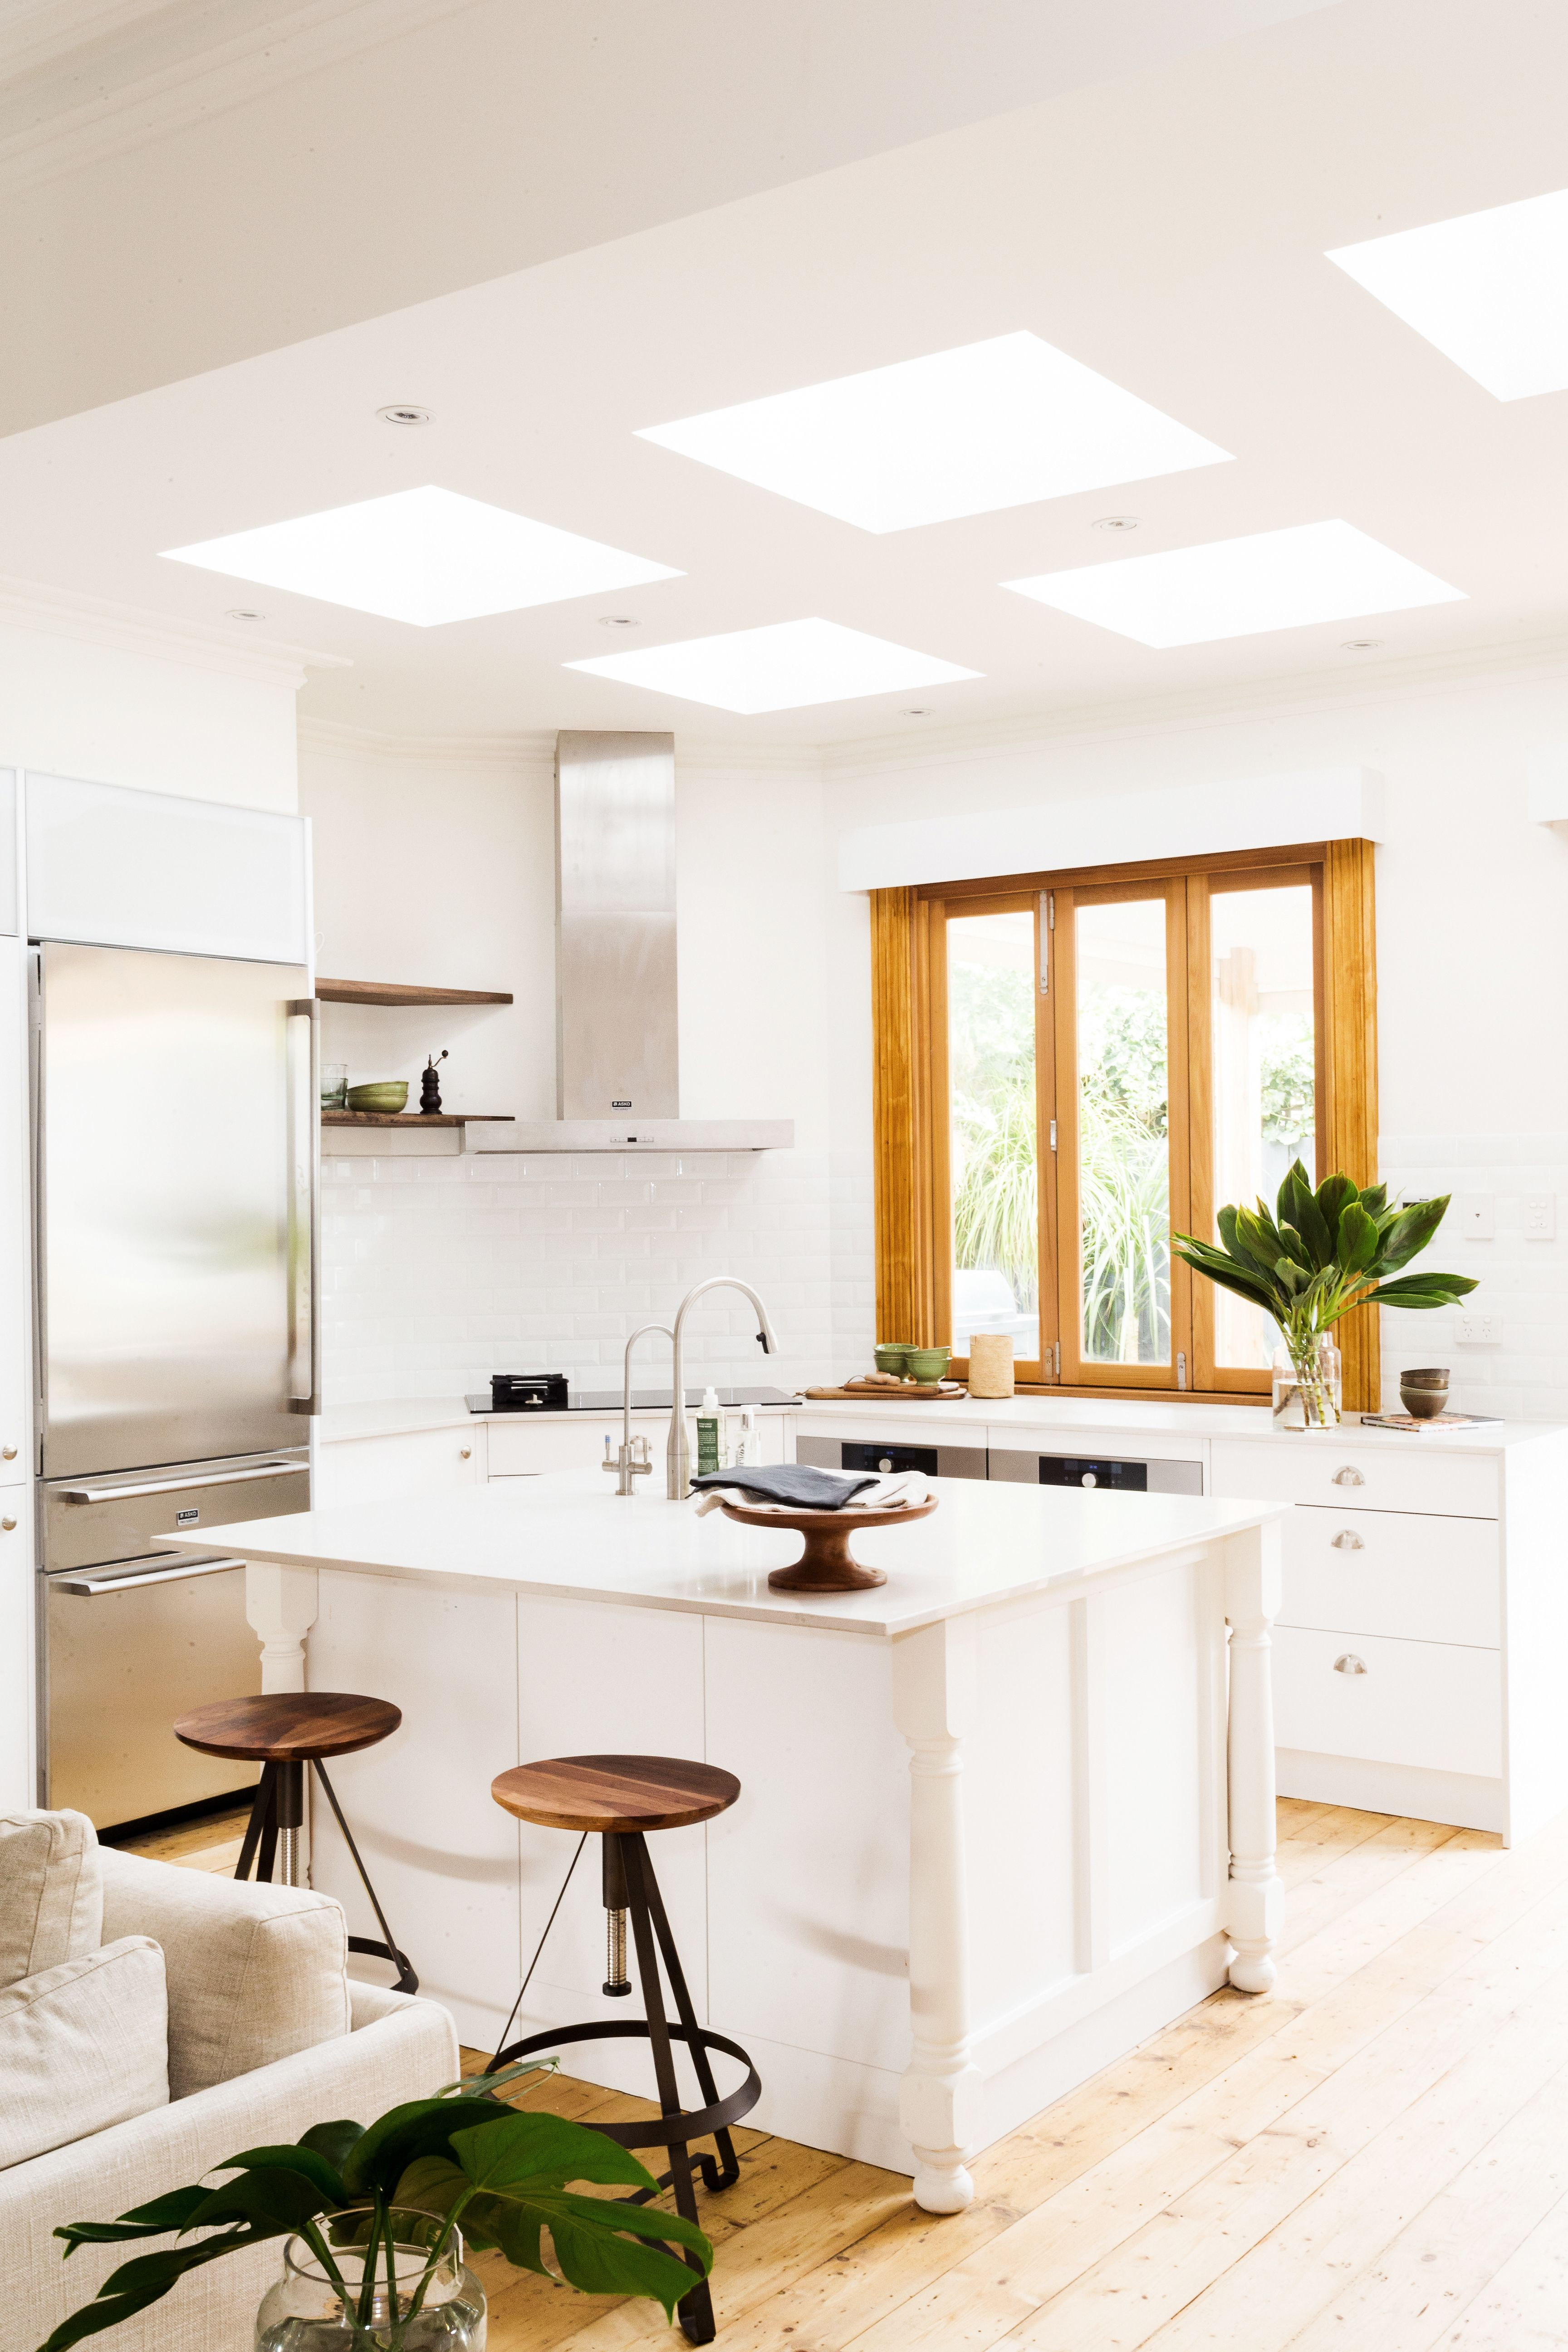 The Ideal Home For You, Based On Your #Zodiac Sign   Dwell #kitchen